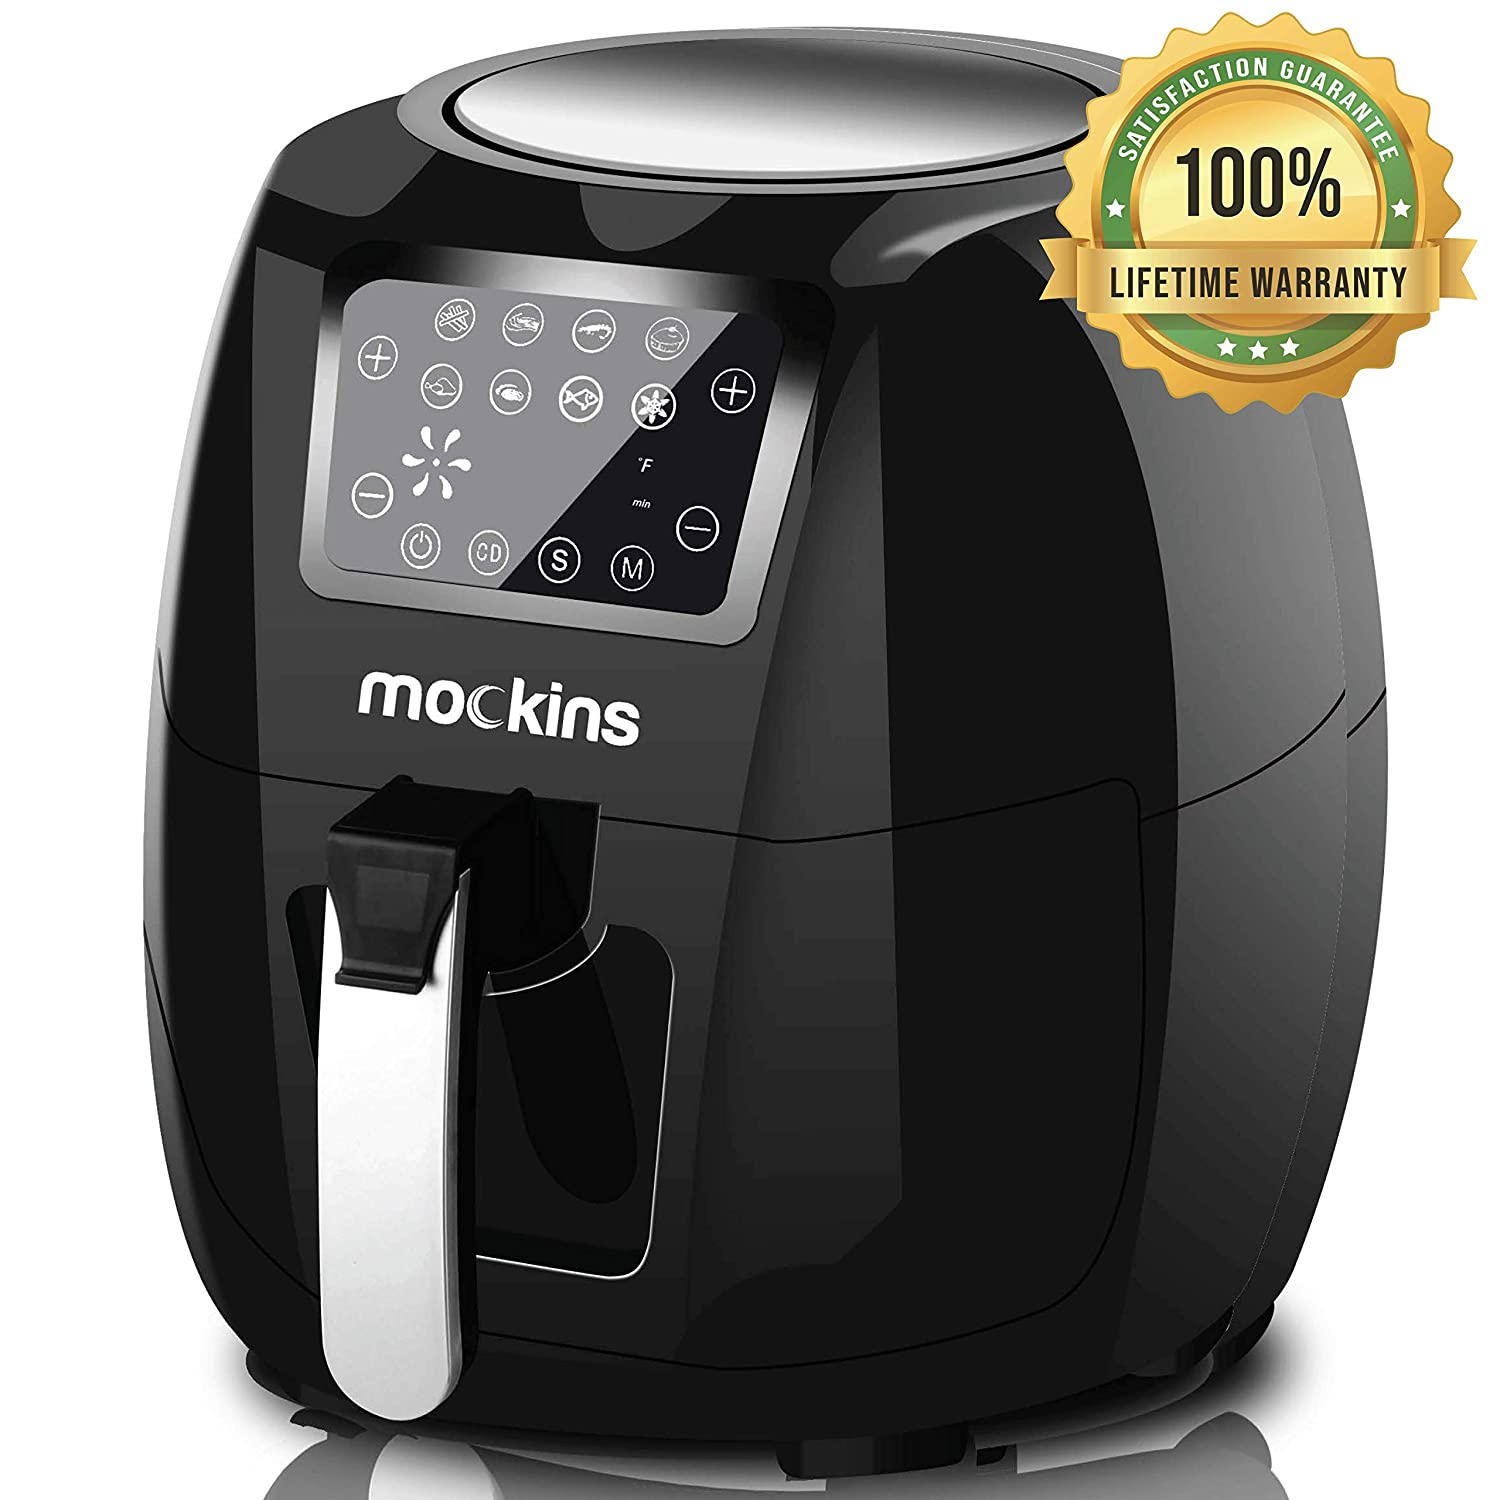 mockins Extra Large Air Fryer 5.8 Qt with Advanced LCD Touch Screen, 7 Built-In Presets and Rapid Air Circulation Technology and Includes Free Air Fryer Cookbook Must Have Kitchen Gadgets